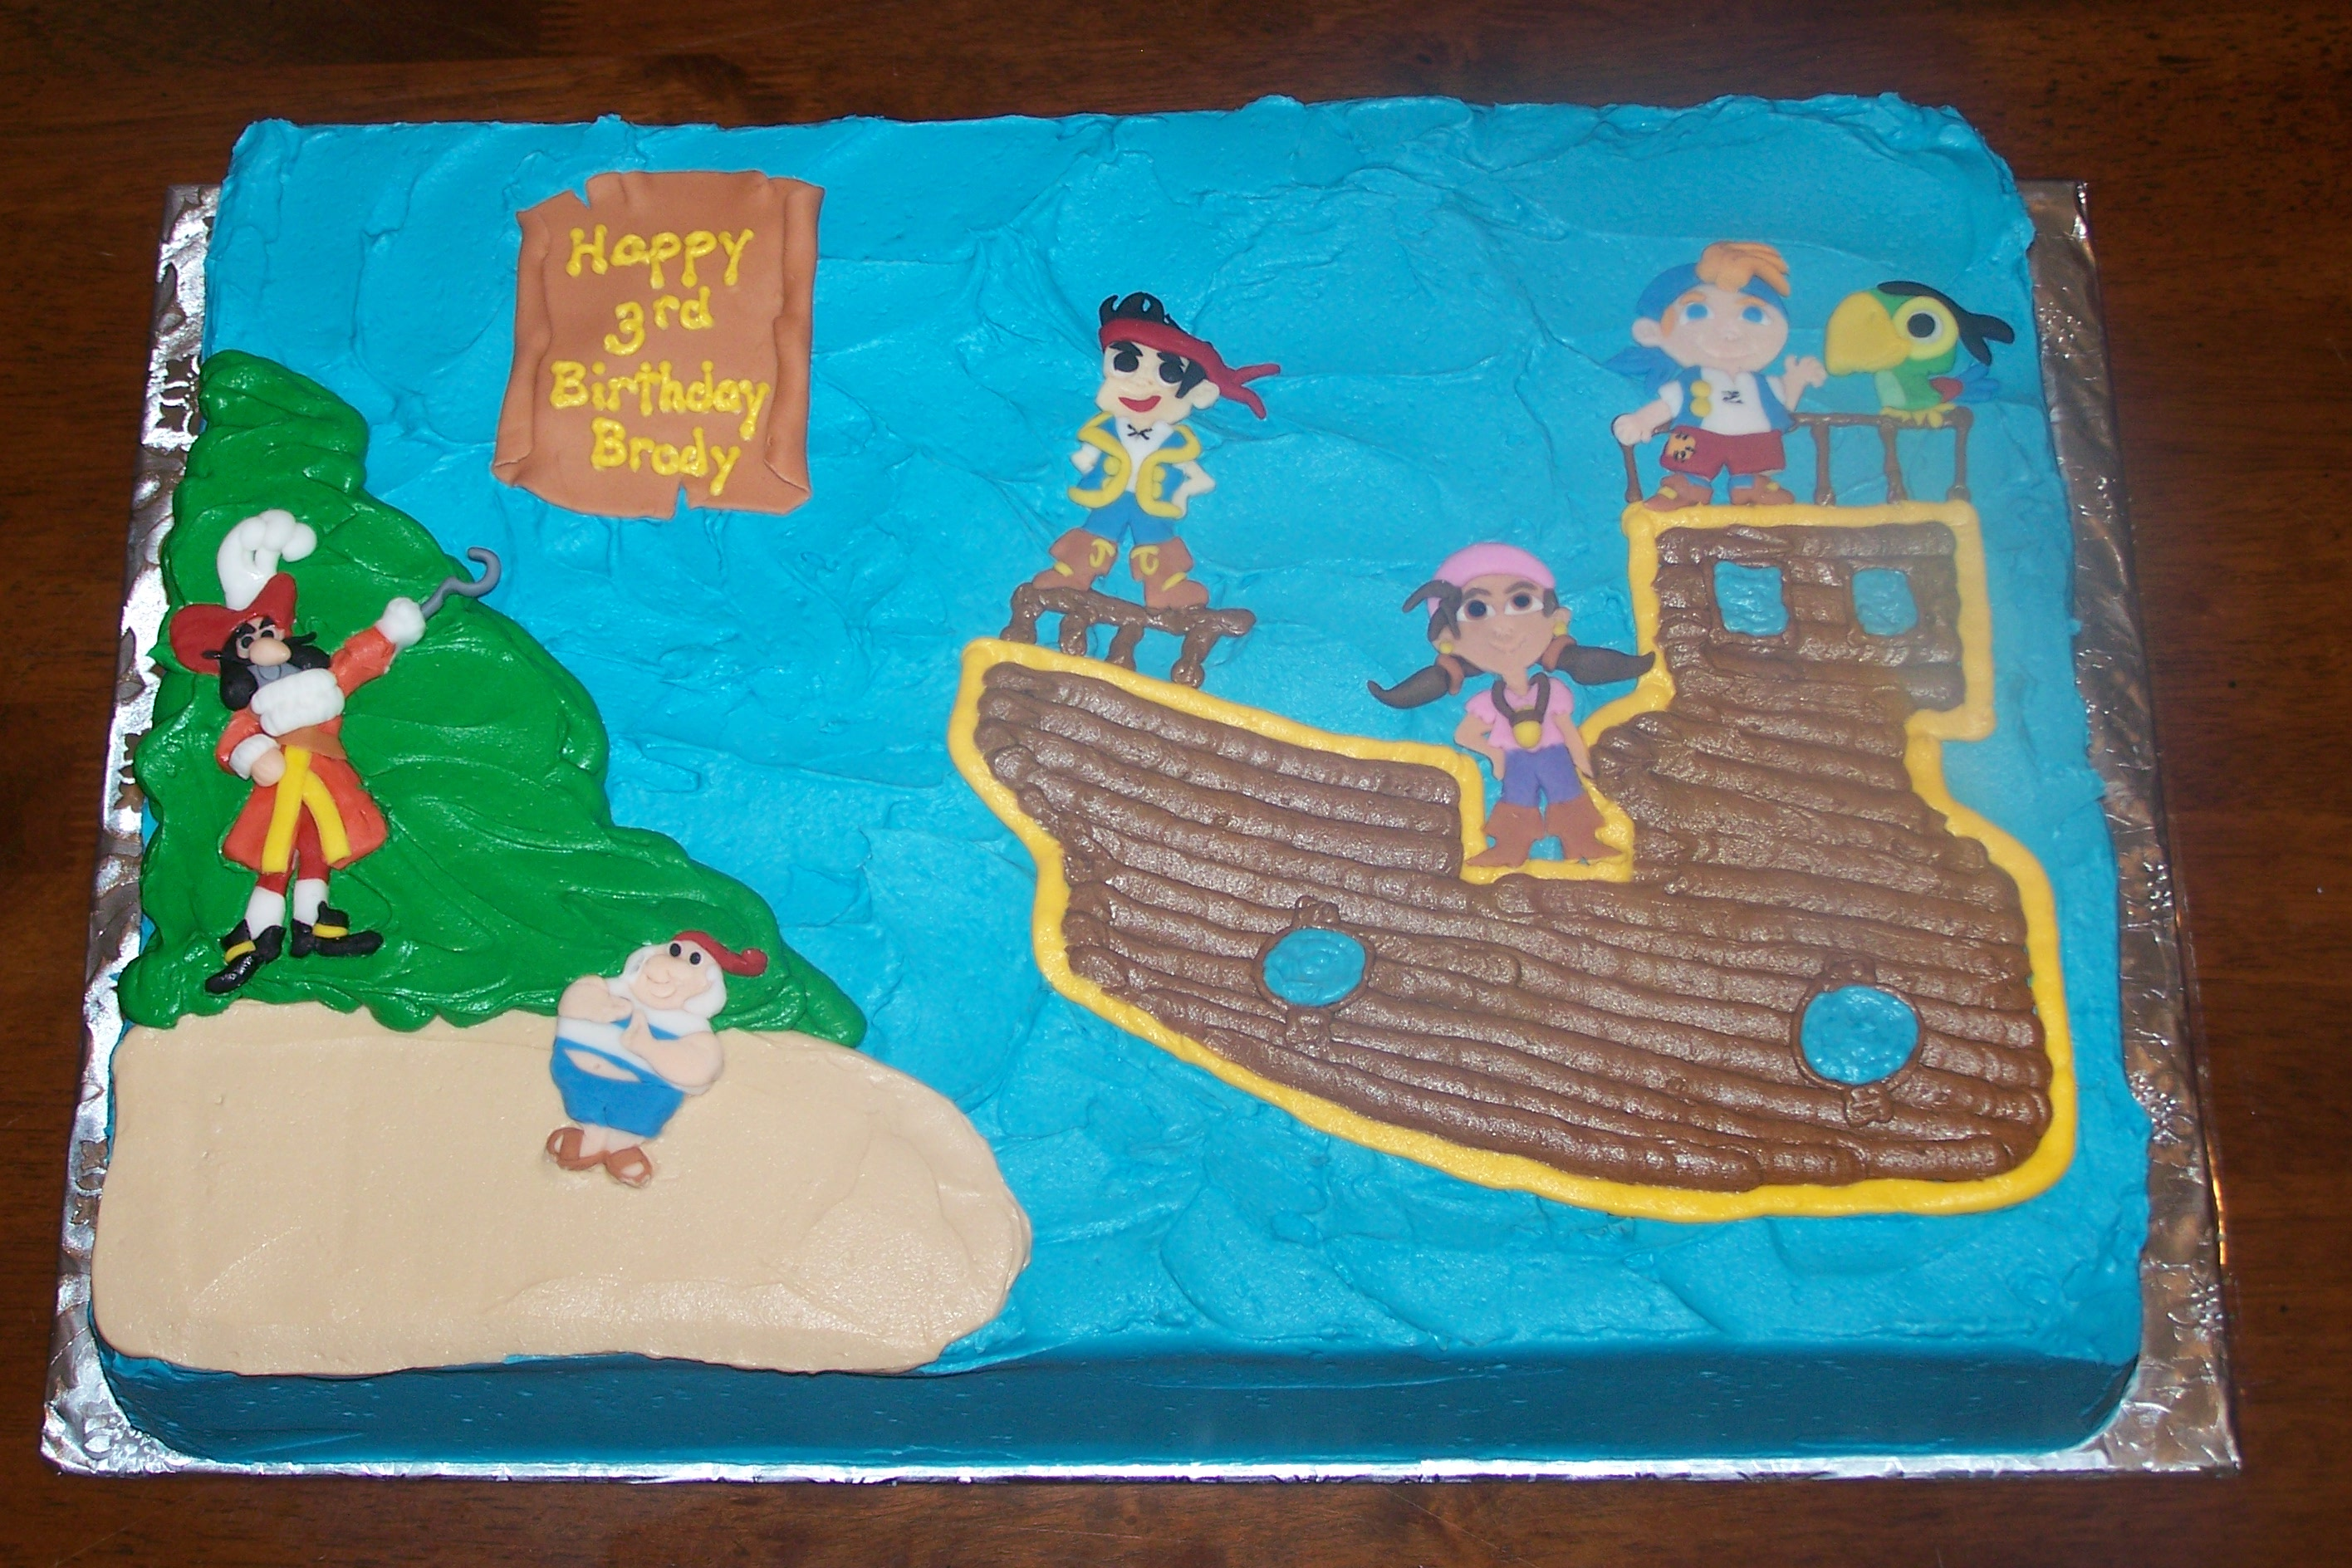 Jake and the Neverland Pirates Cakes by B